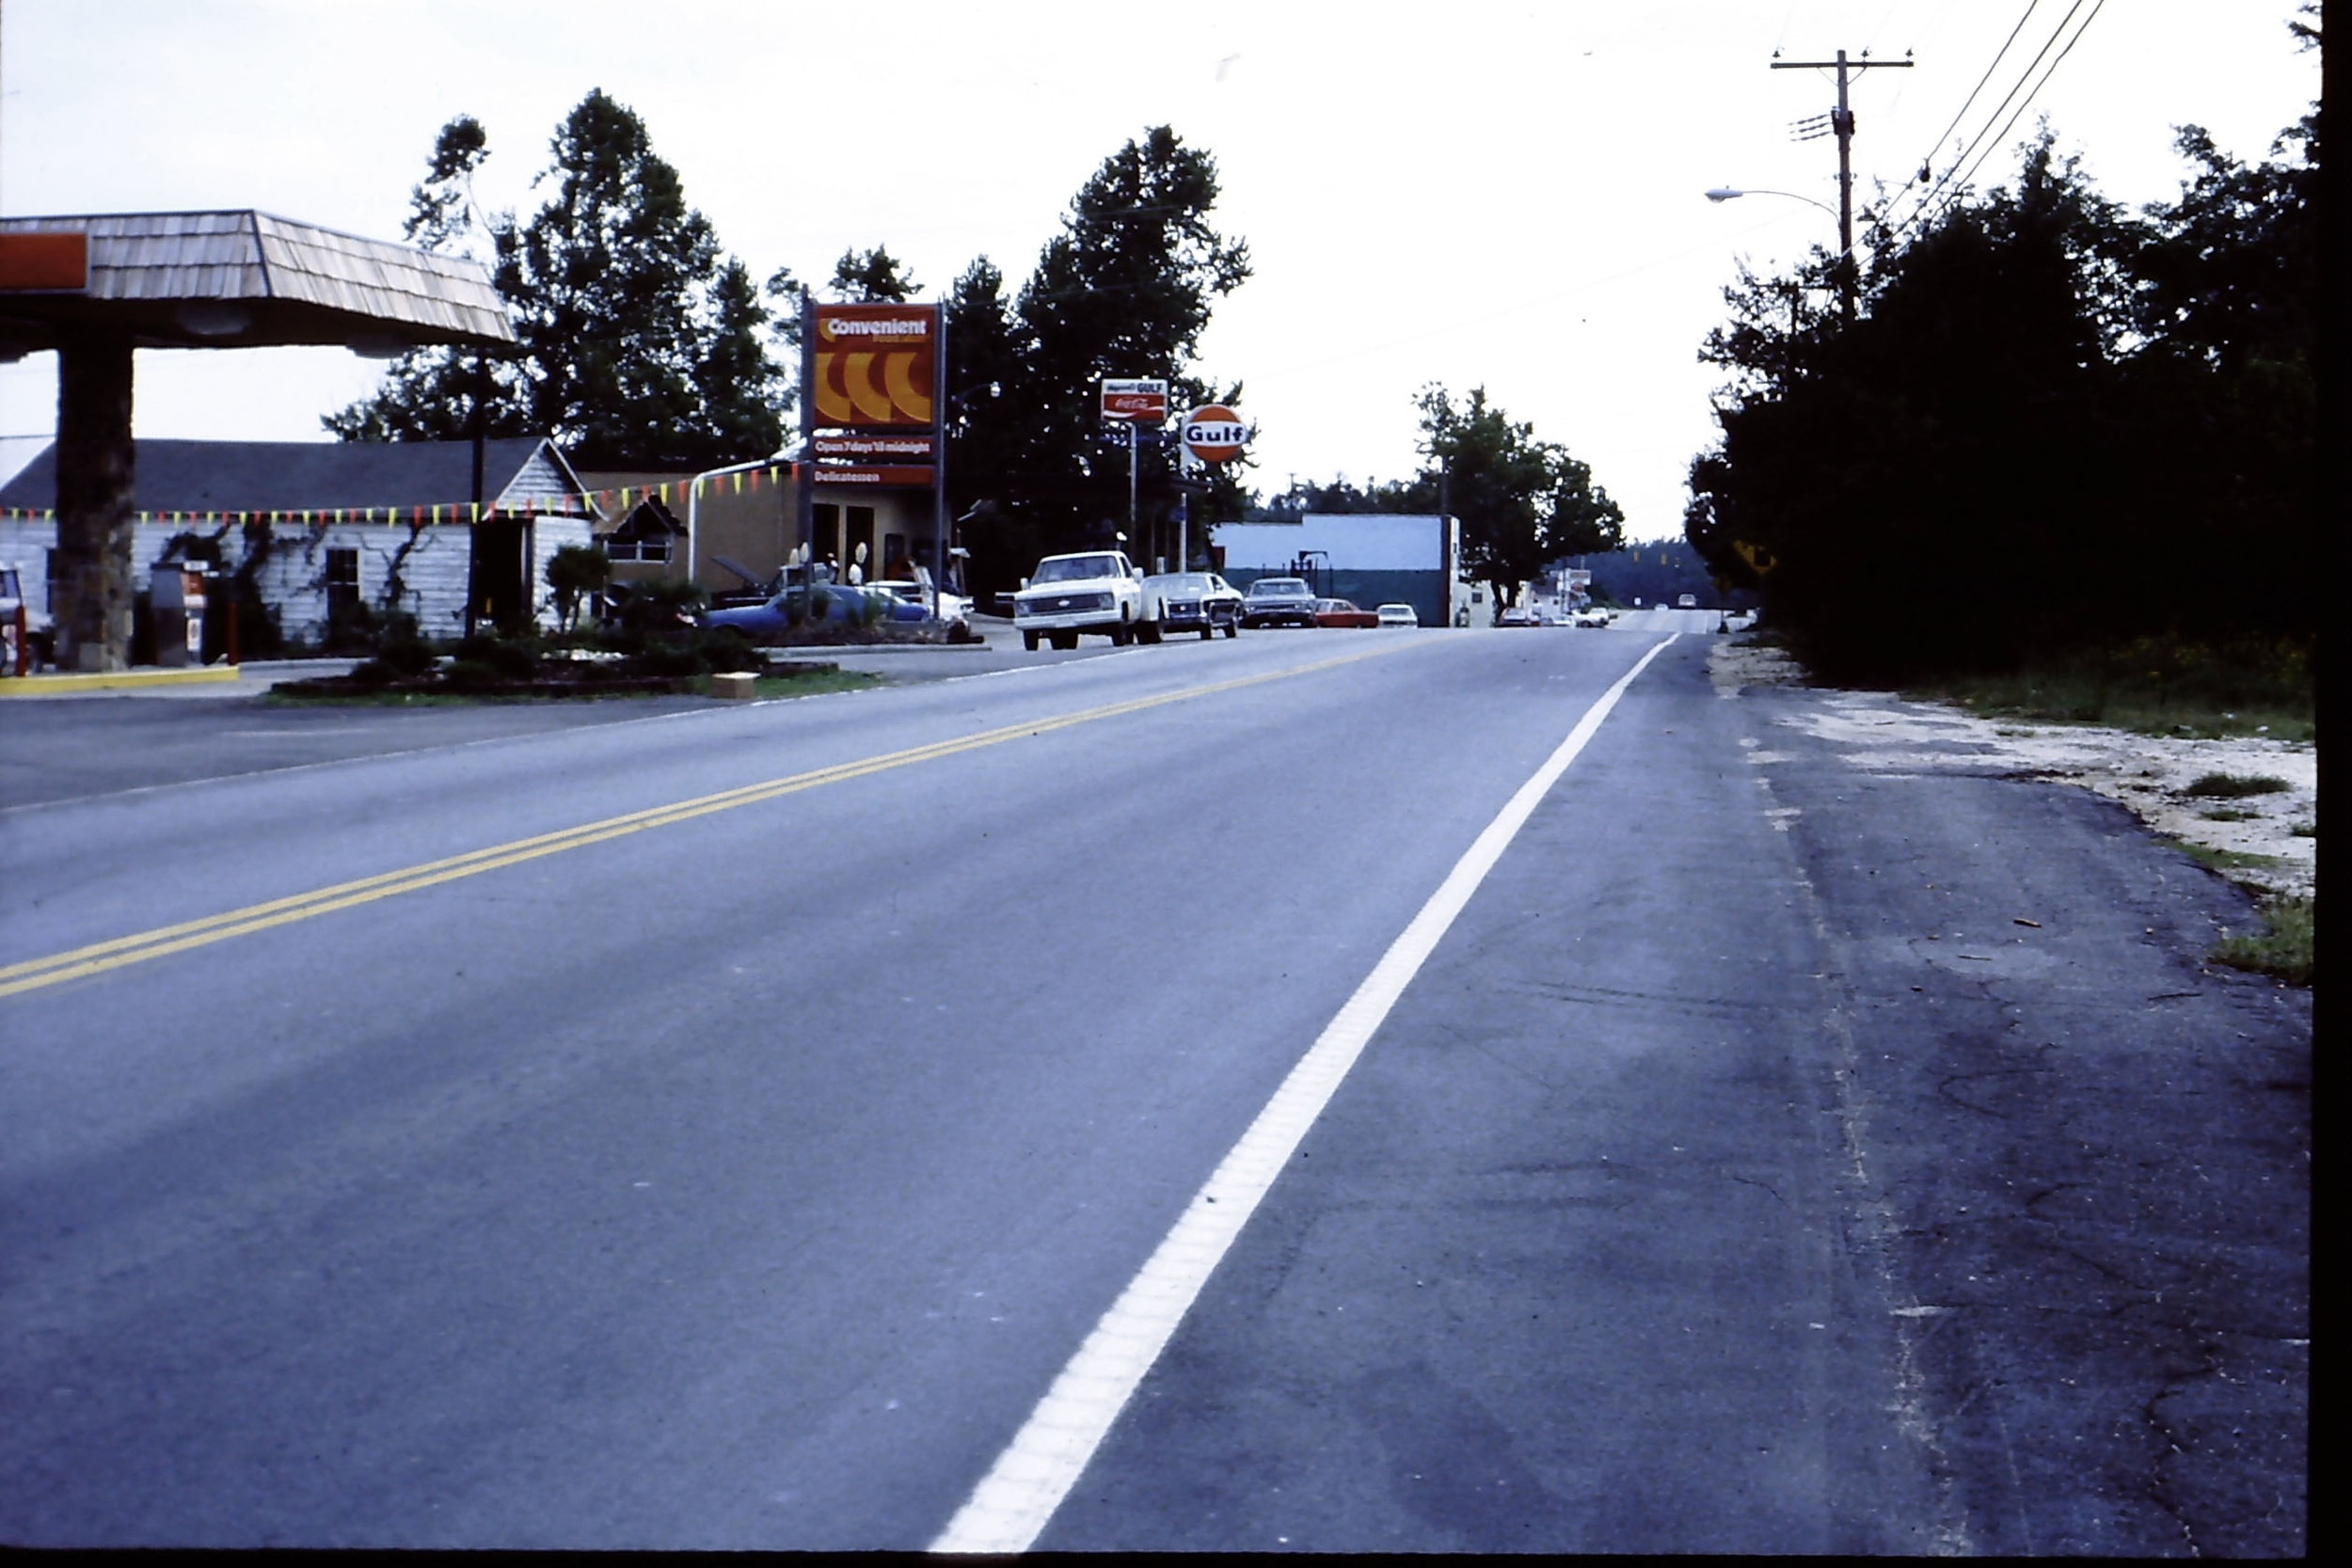 View of Main Street looking South.  Photo taken by Hudnalle McLean about 1970.